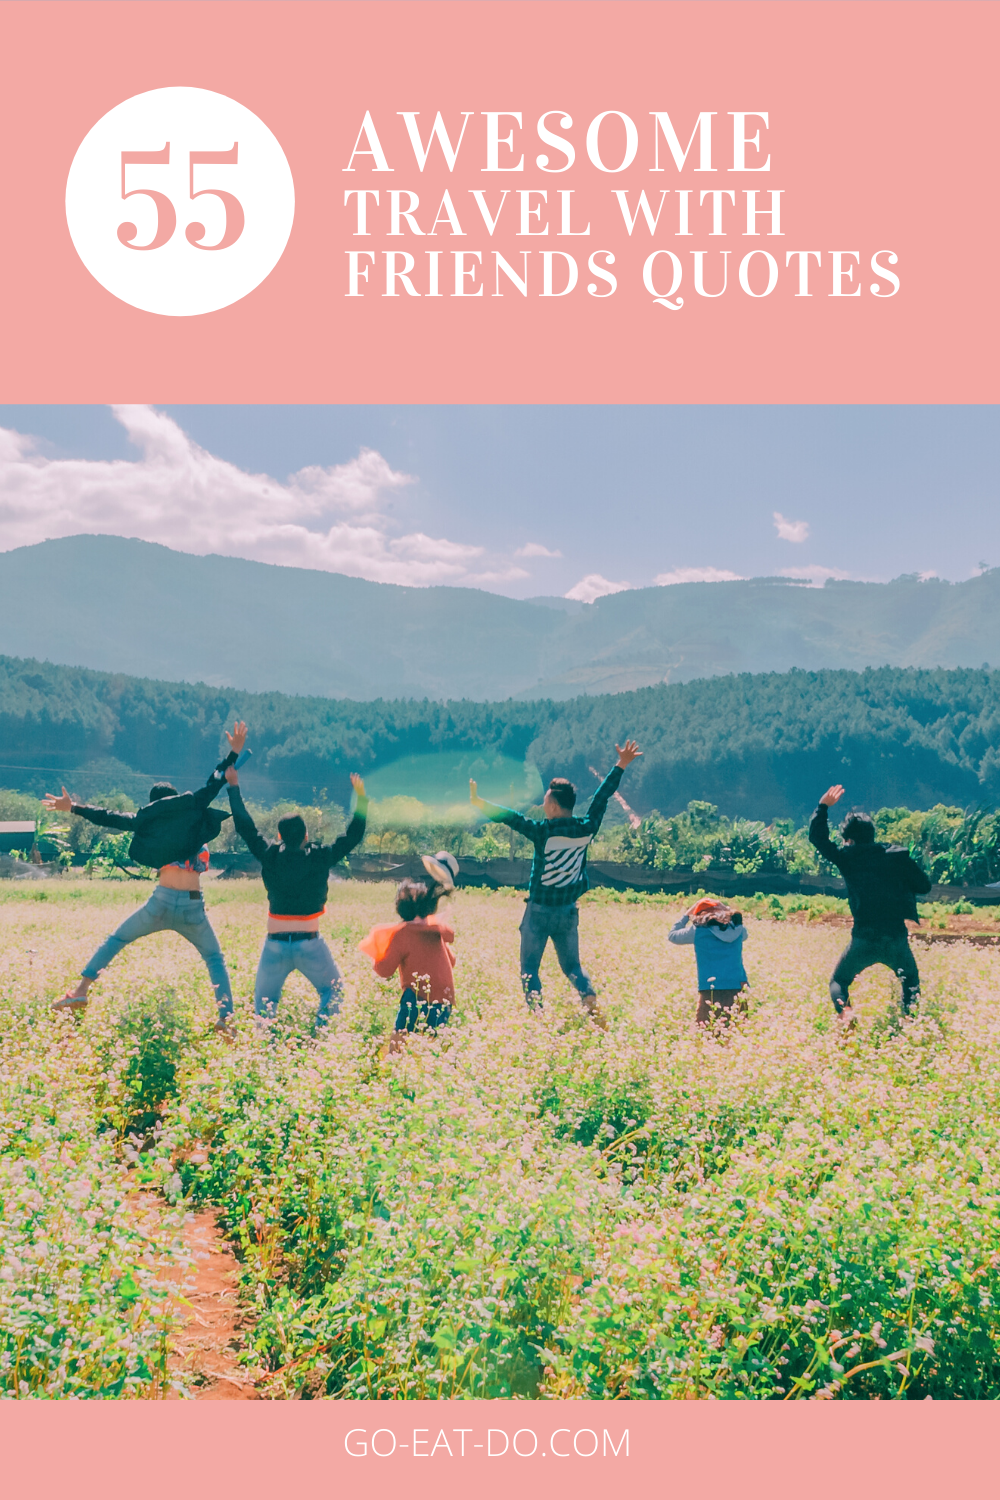 55 Awesome Travel with Friends Quotes in 2020 | Travel ...